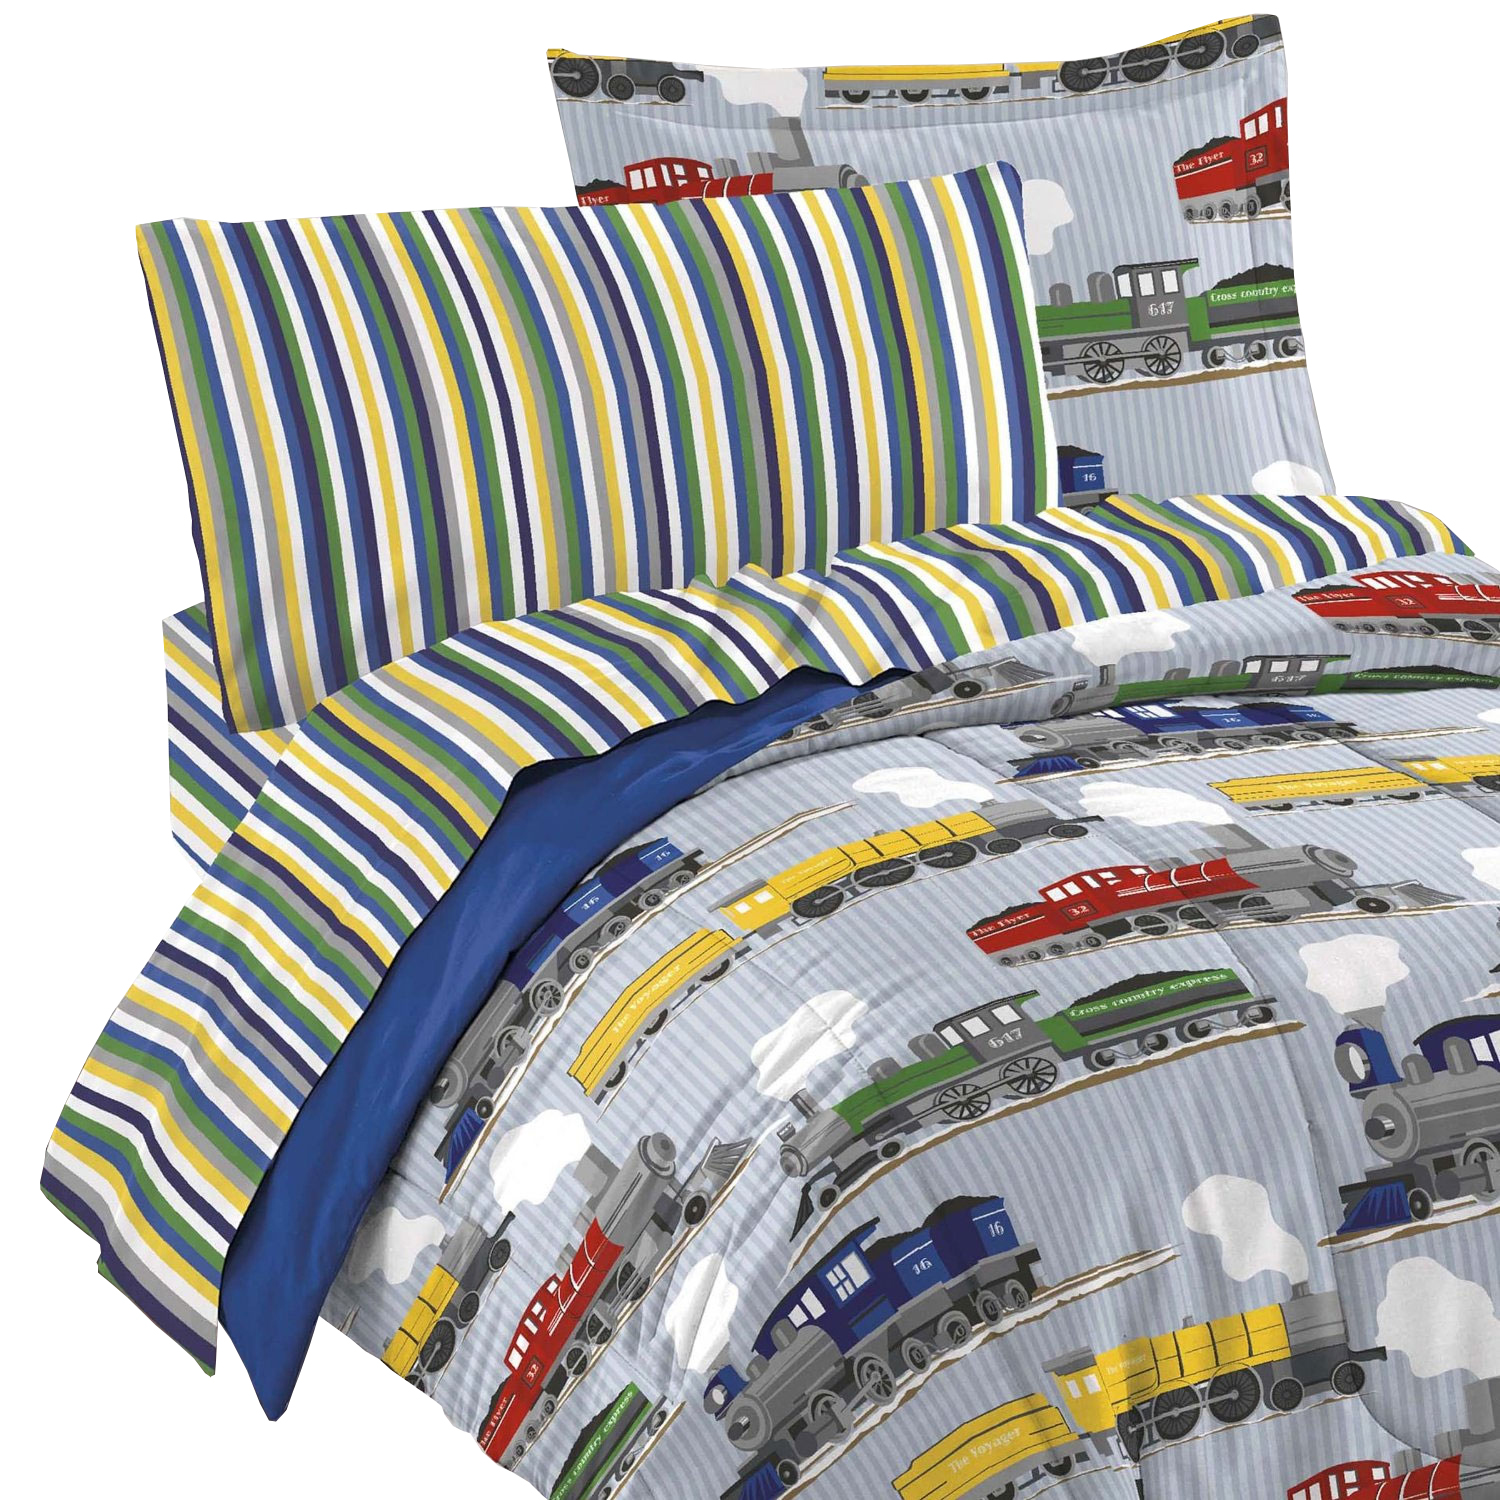 Trains and Railroads Bedding Set